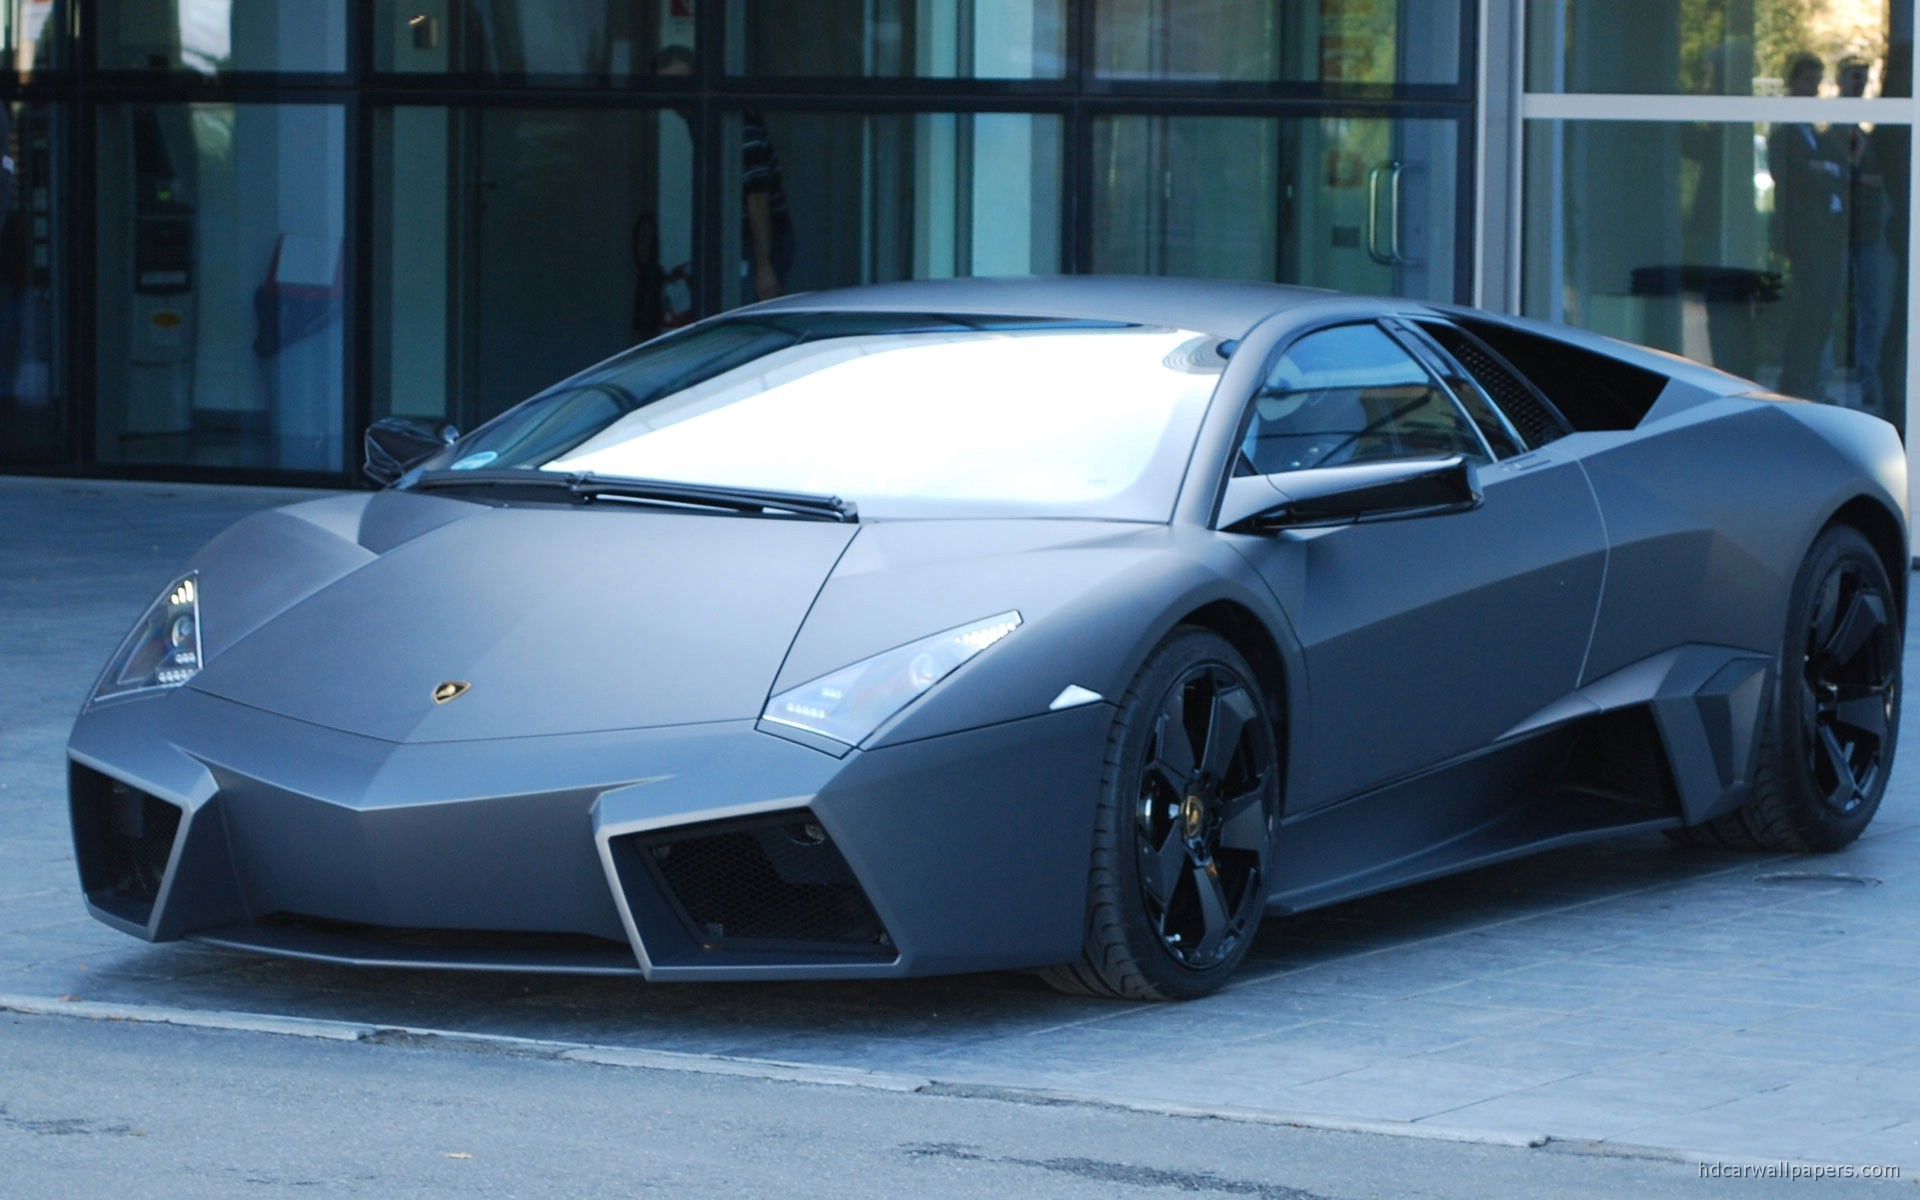 Res: 1920x1200, Tags: Widescreen Lamborghini. Description: Download New Lamborghini  Widescreen wallpaper ...